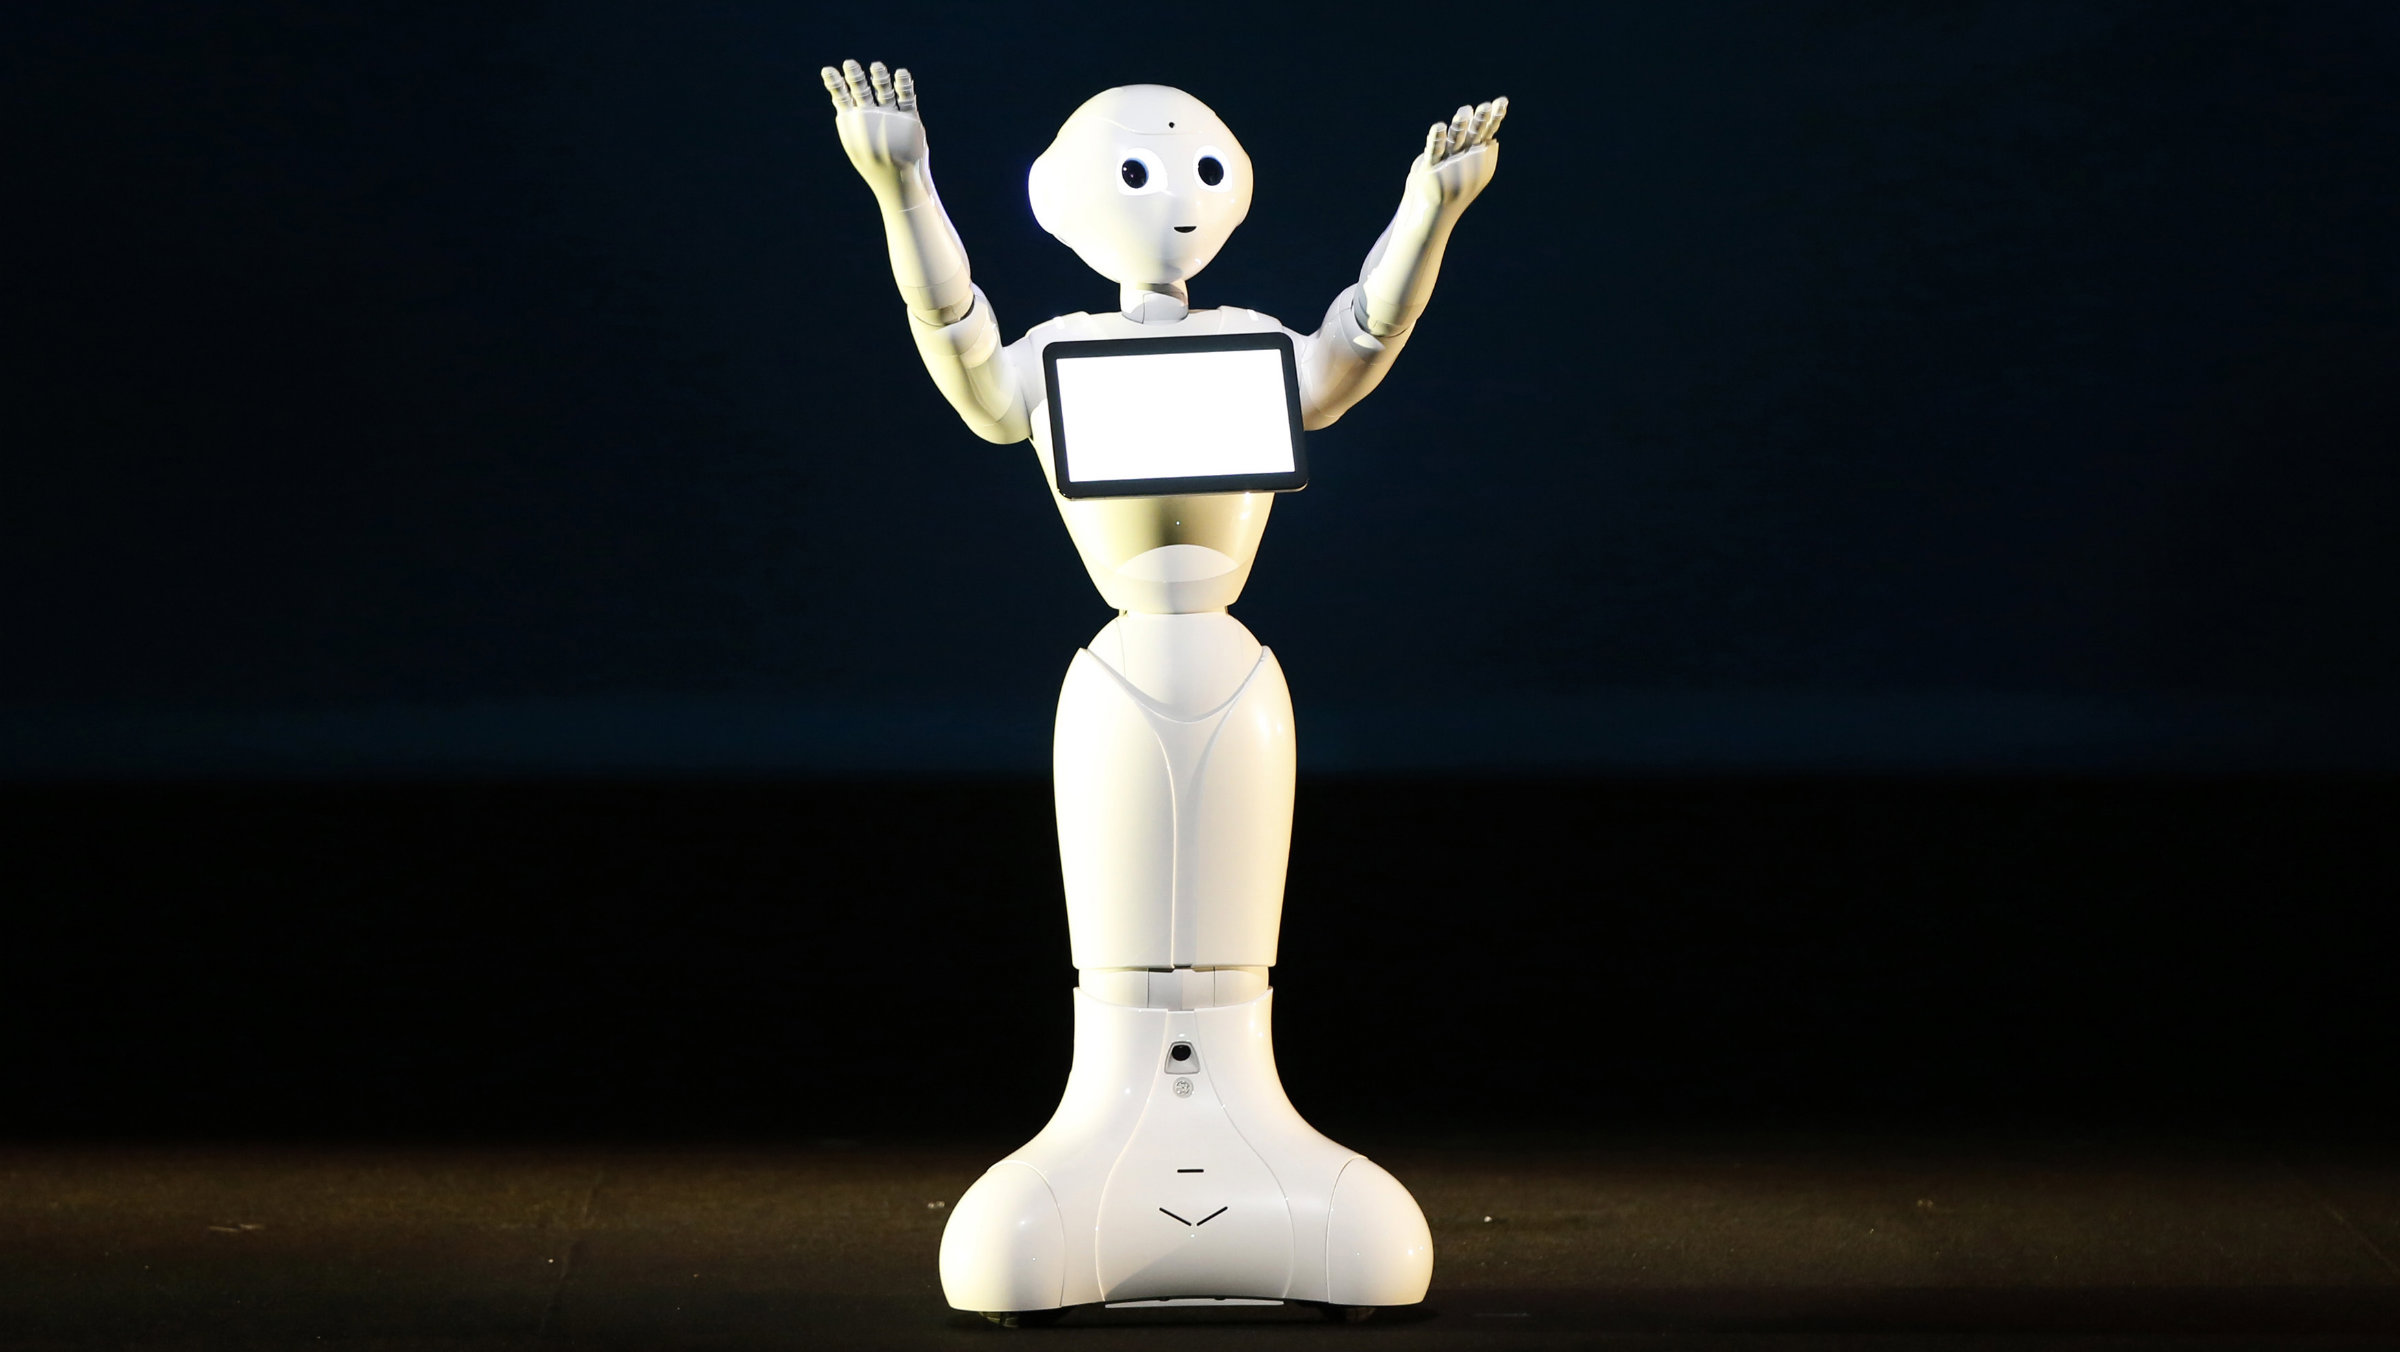 Softbank's humanoid robot will be great for tending to